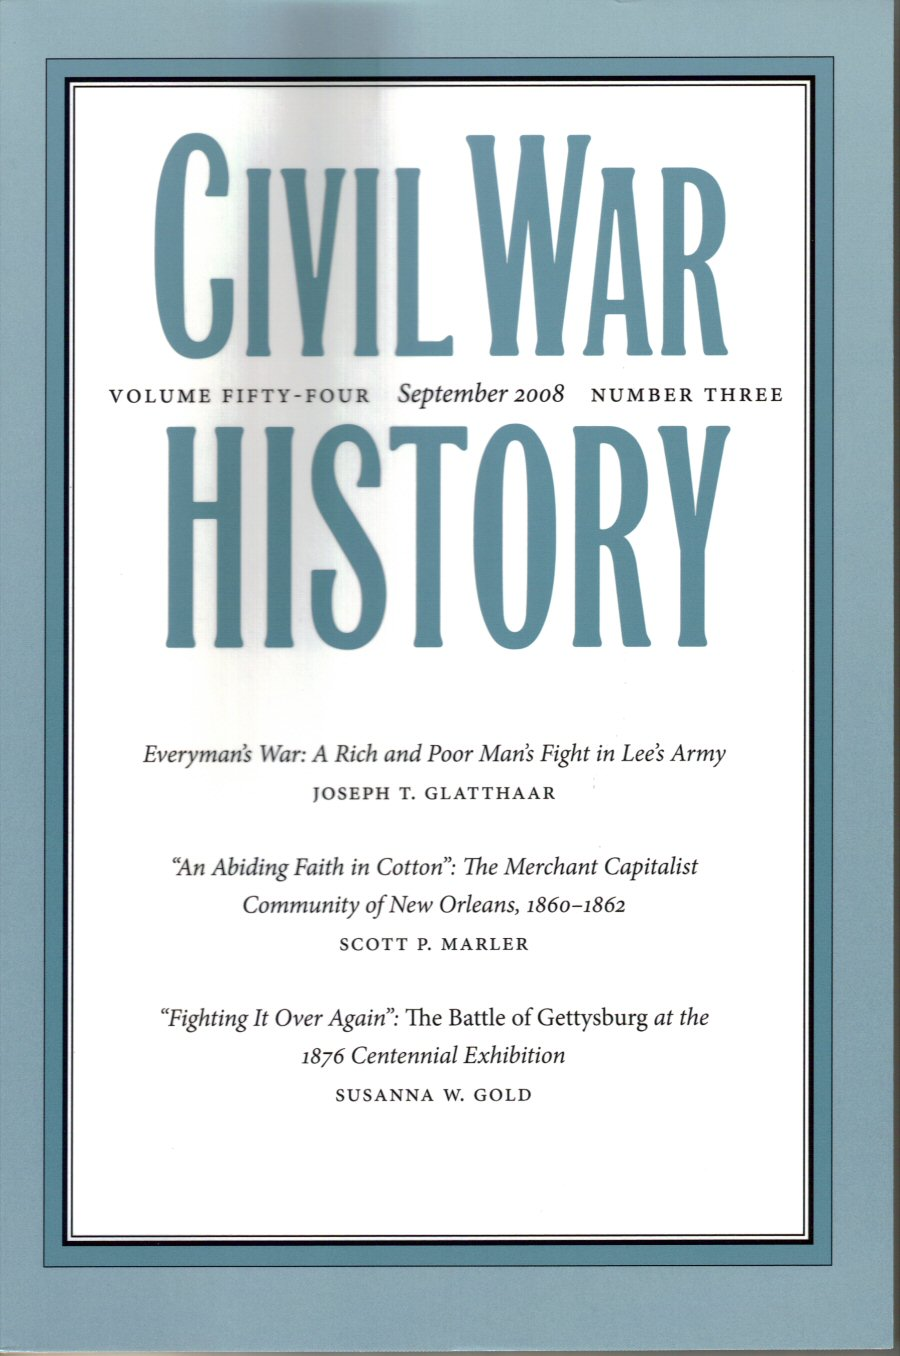 Civil War History, Volume 54, Number 3 (September 2008)